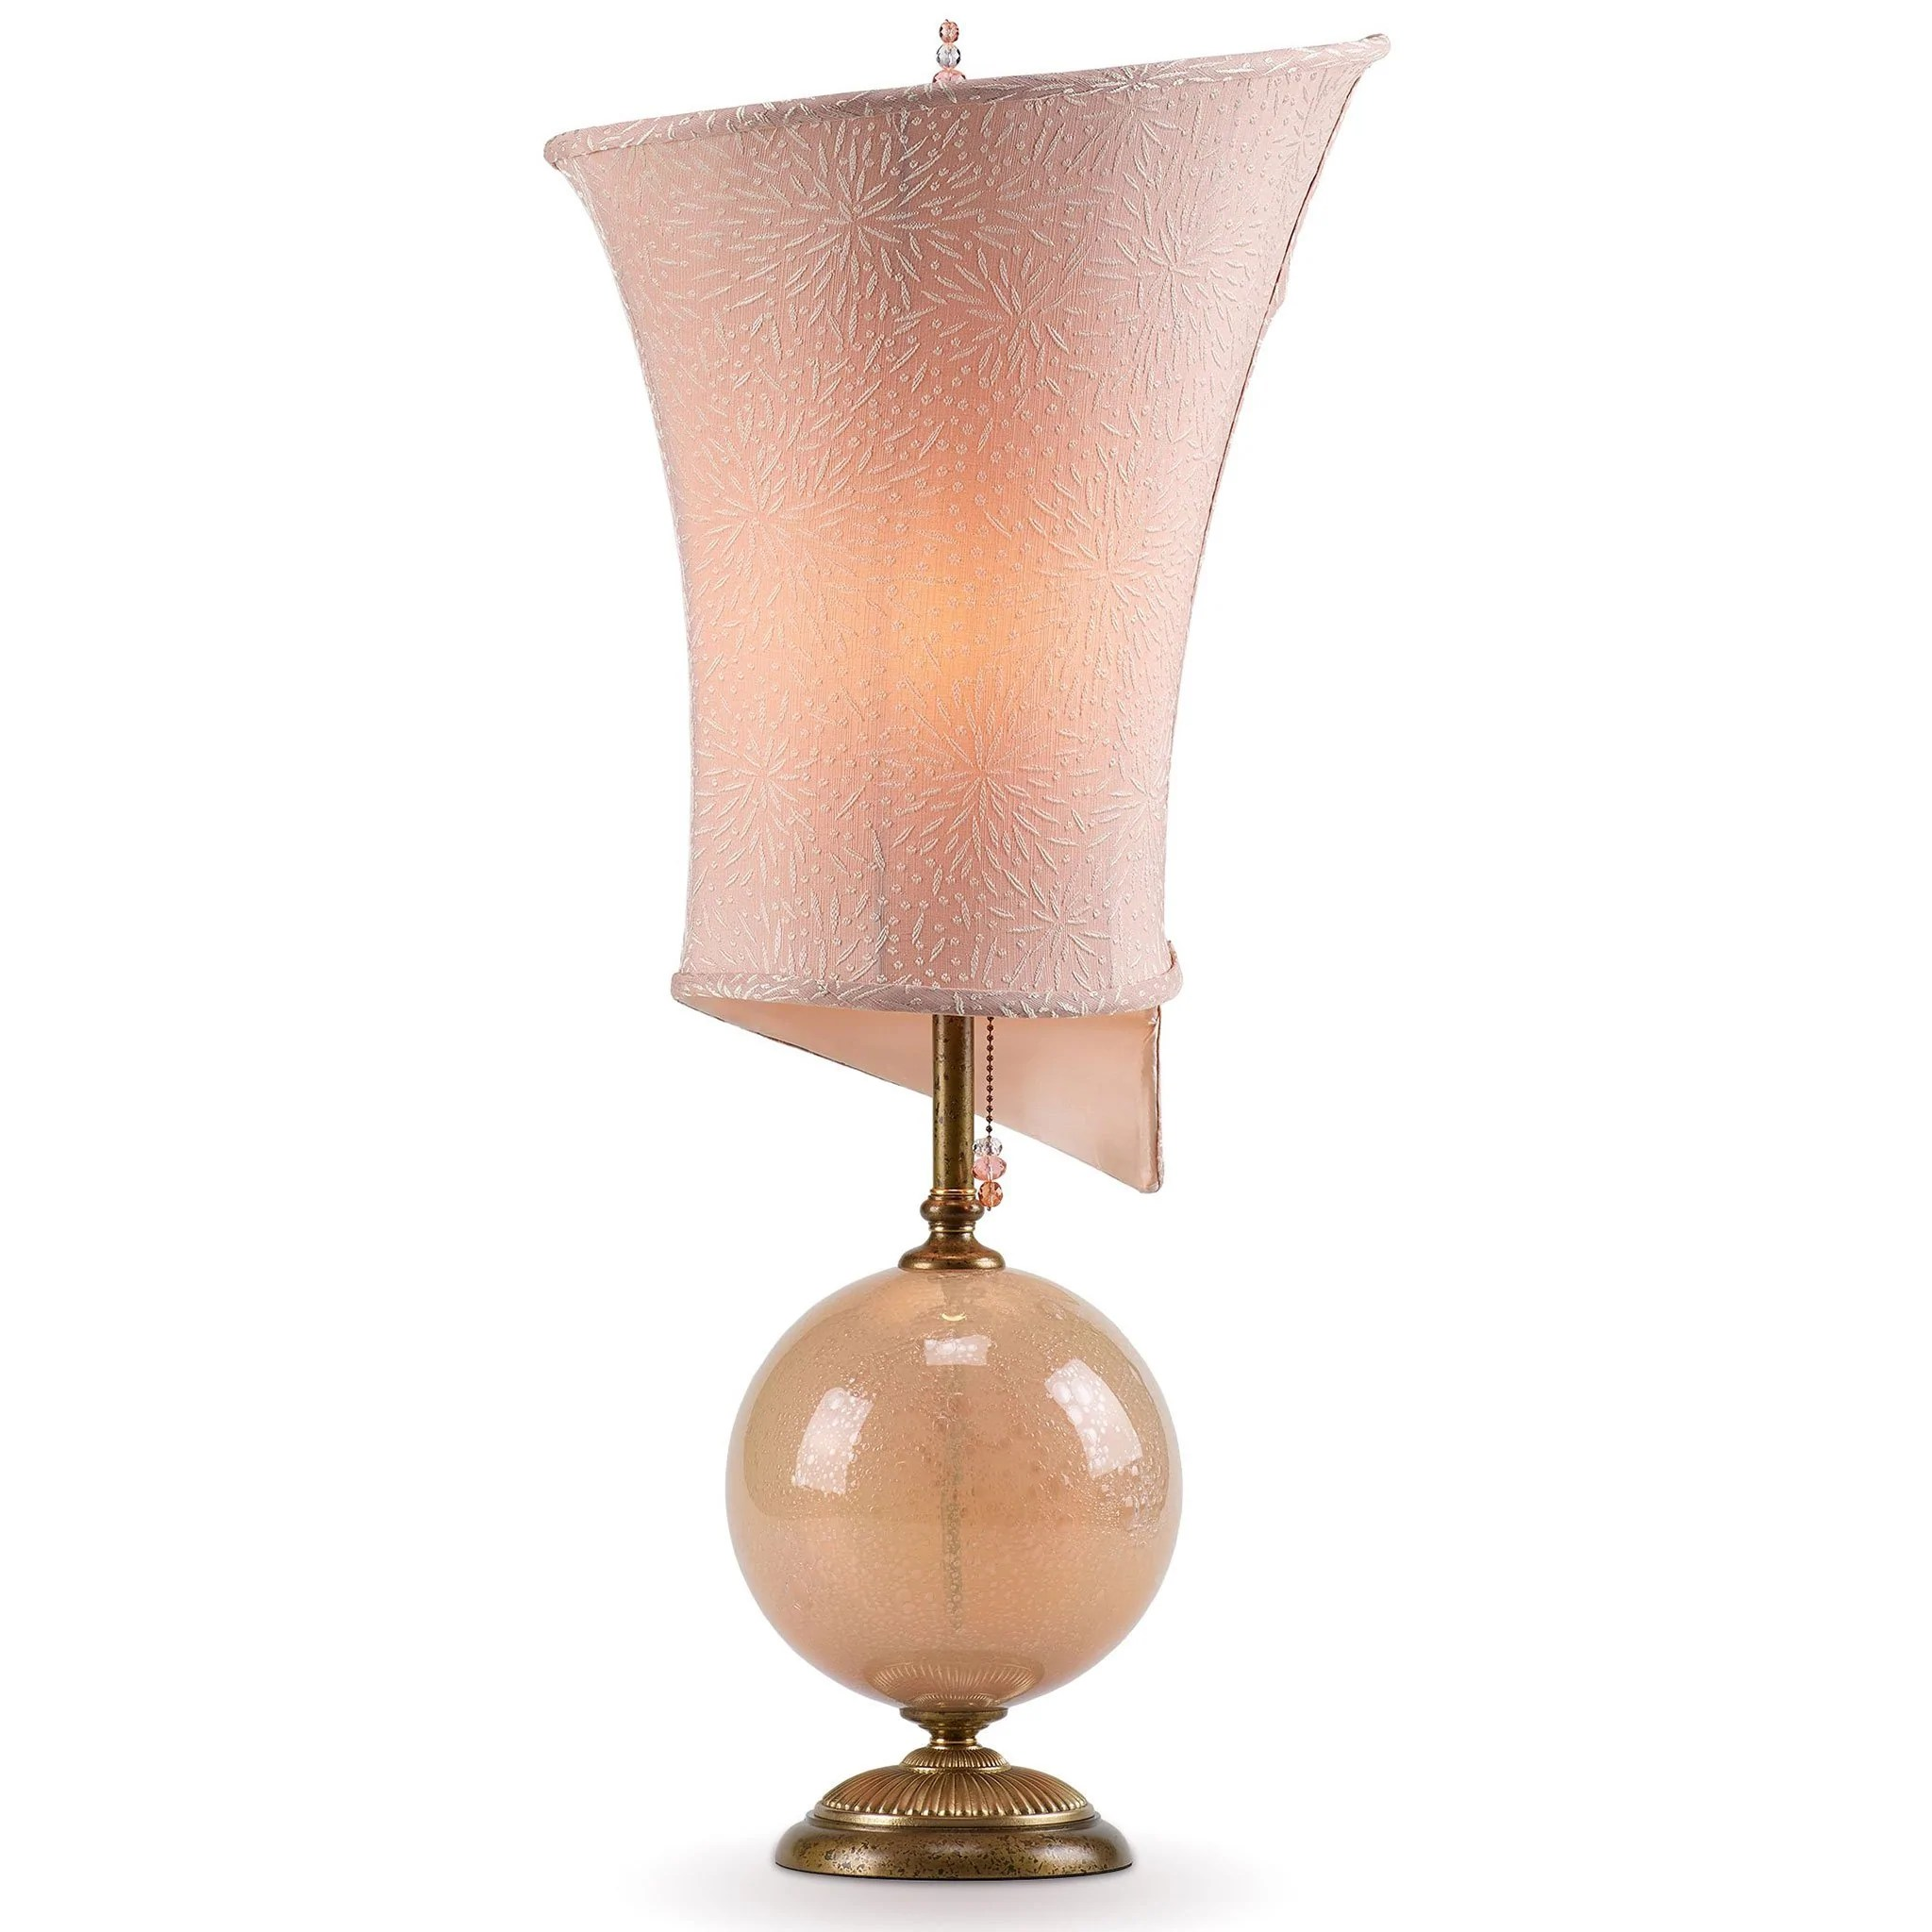 Kinzig Design Celia Table Lamp Cream Blown Glass Base With Linen Shade Sweetheart Gallery Contemporary Craft Gallery Fine American Craft Art Design Handmade Home Personal Accessories